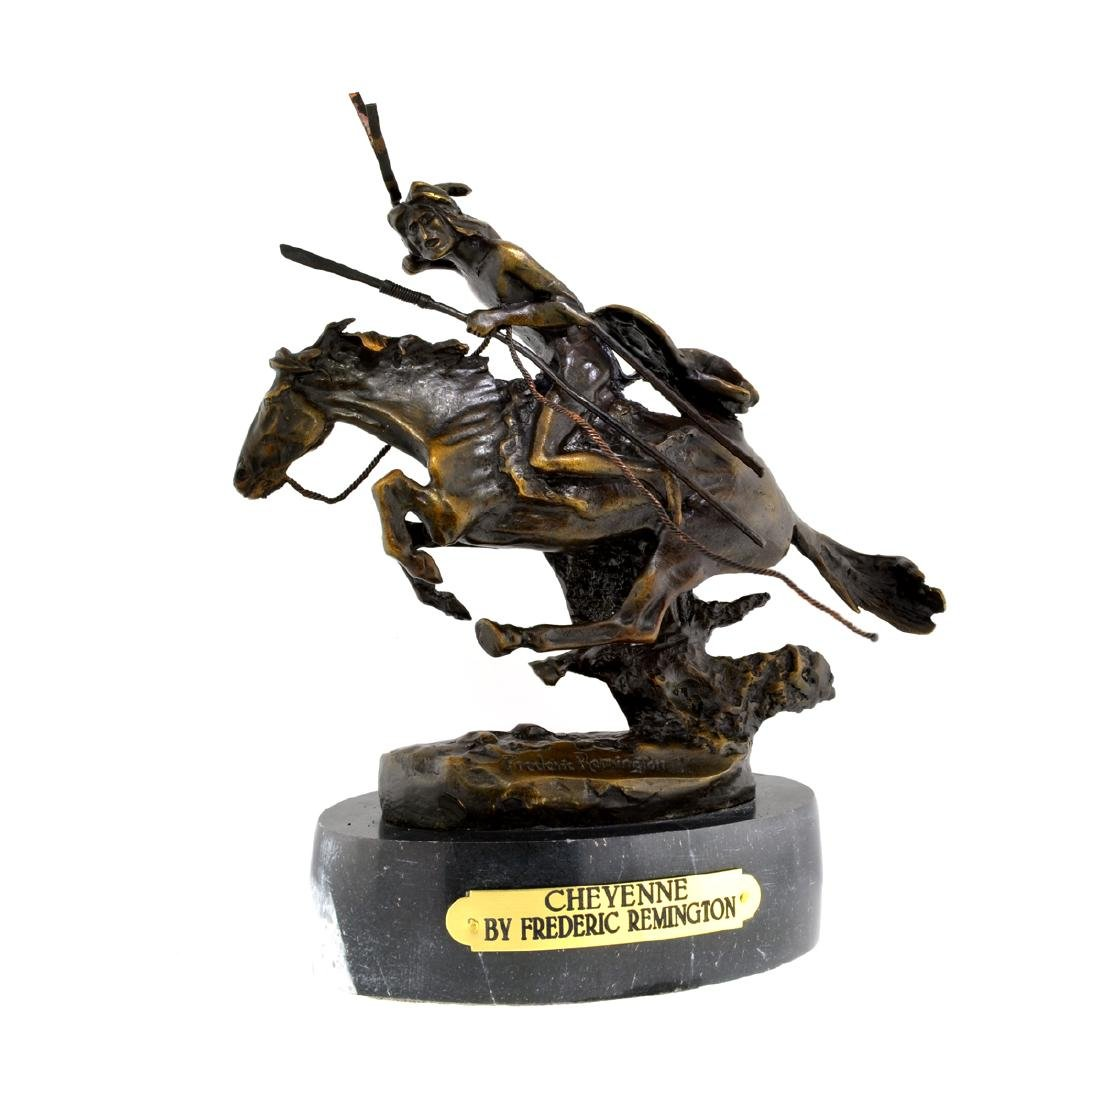 Cheyenne- By Frederic Remington- Bronze Reissue